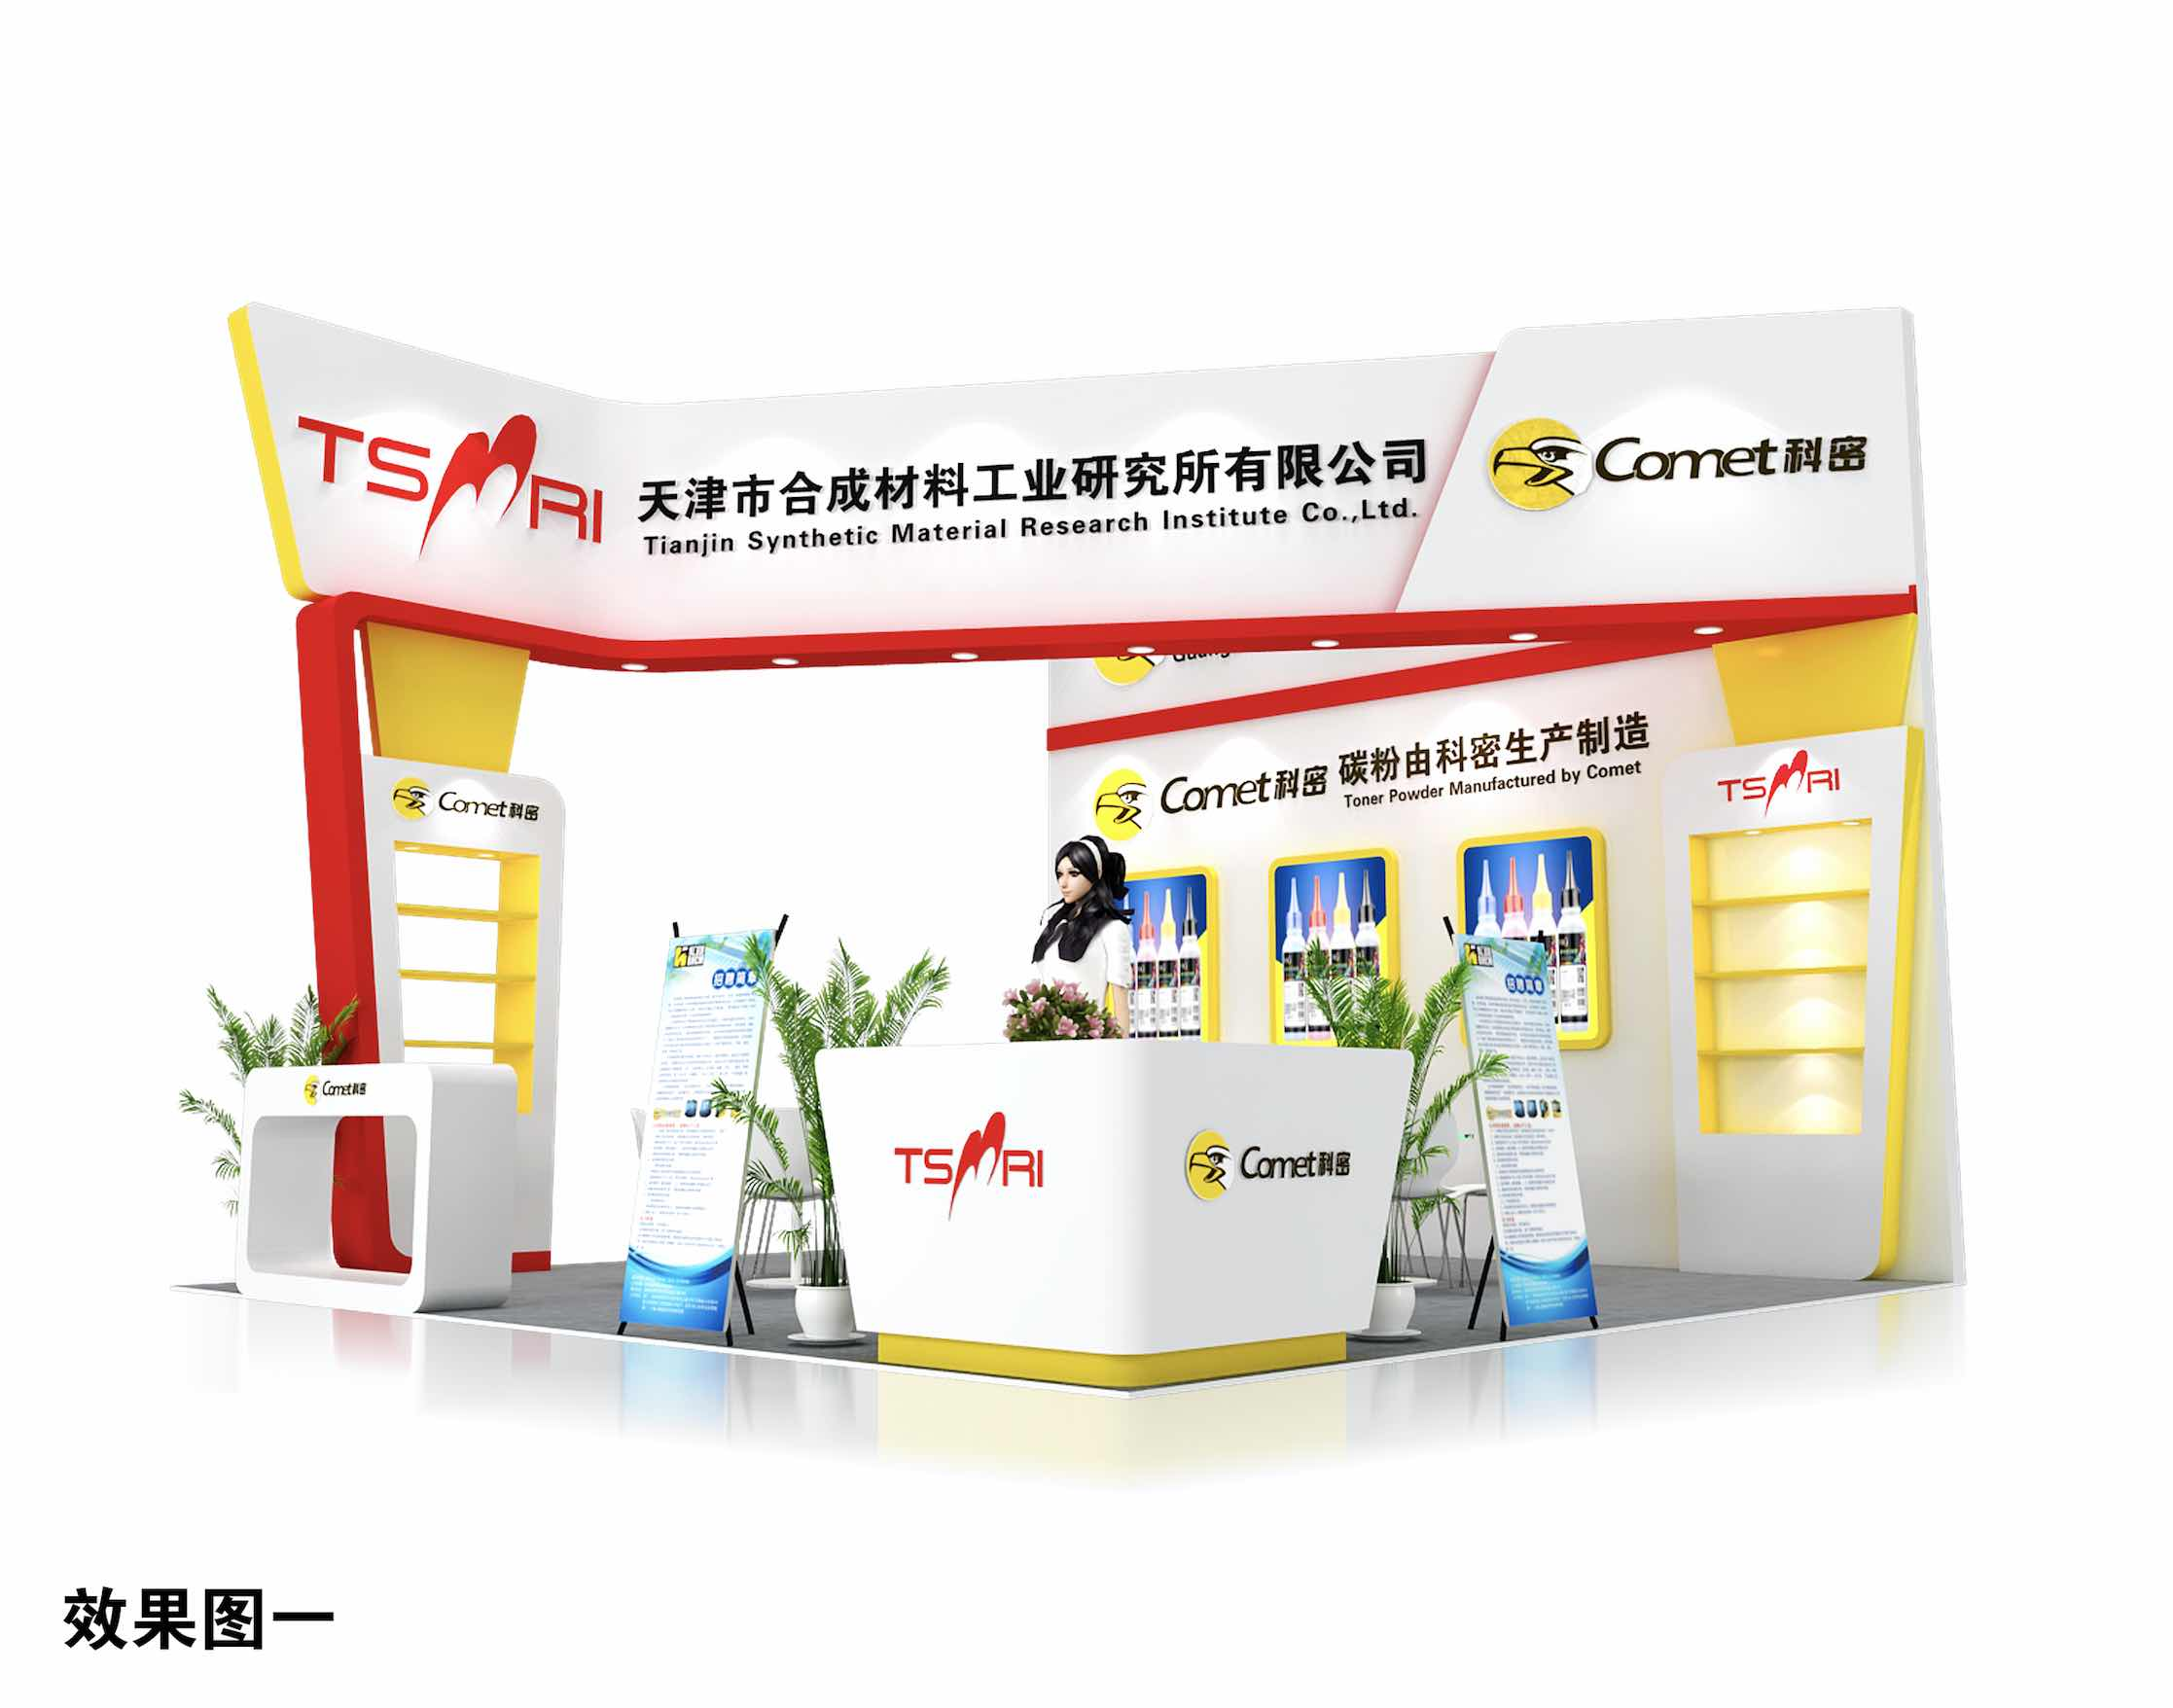 Our company will attend the 13th China (zhuhai) international office equipment and consumables exhibition on October 17th